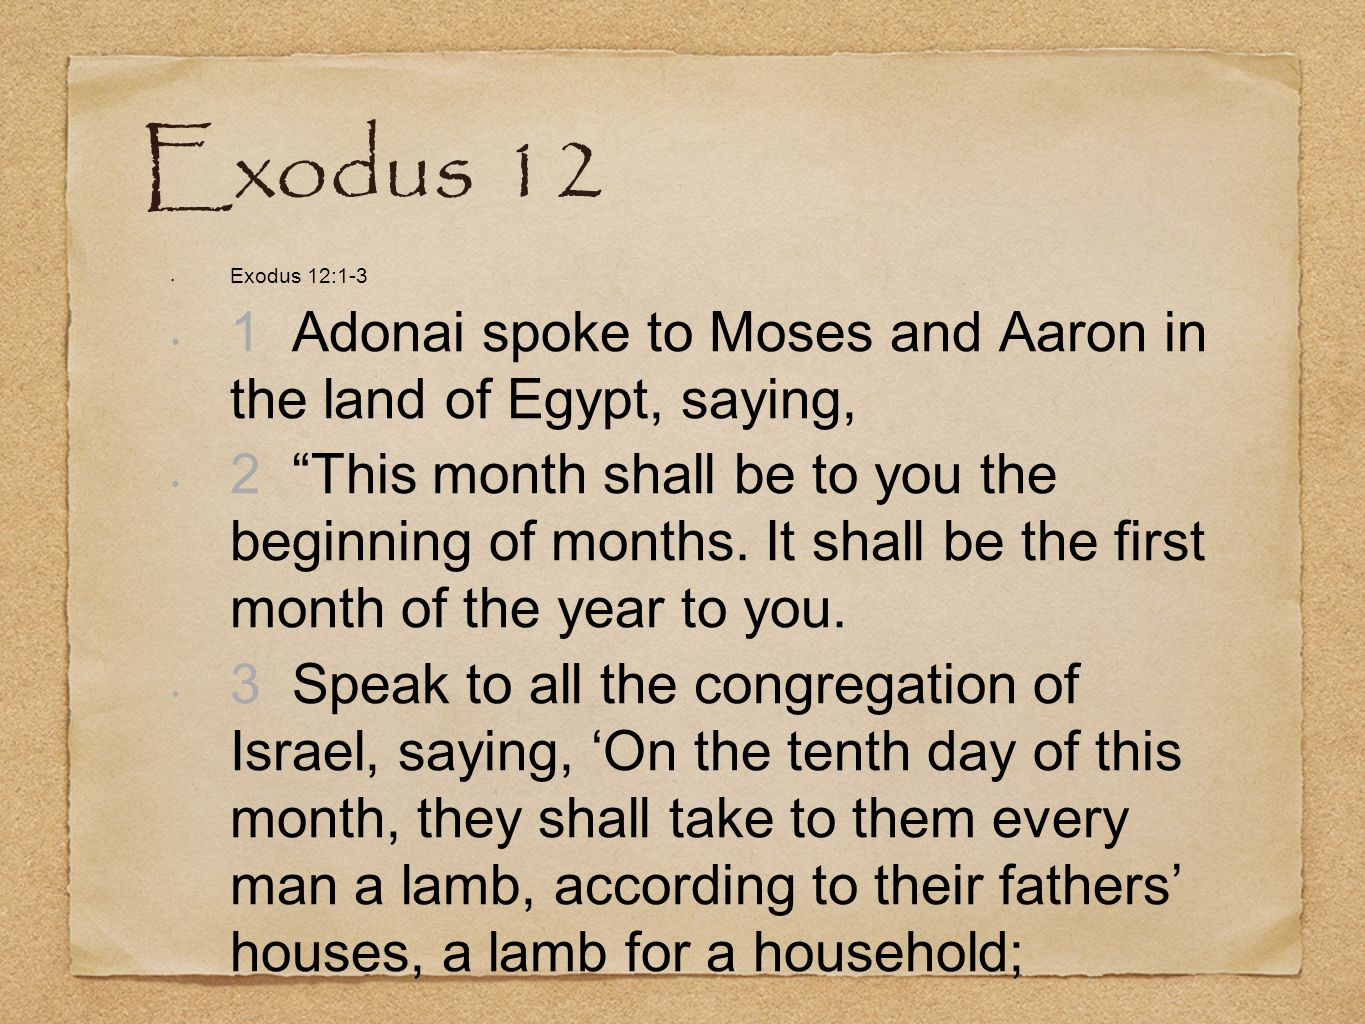 Exodus 12 Exodus 12: Adonai spoke to Moses and Aaron in the land of Egypt, saying,